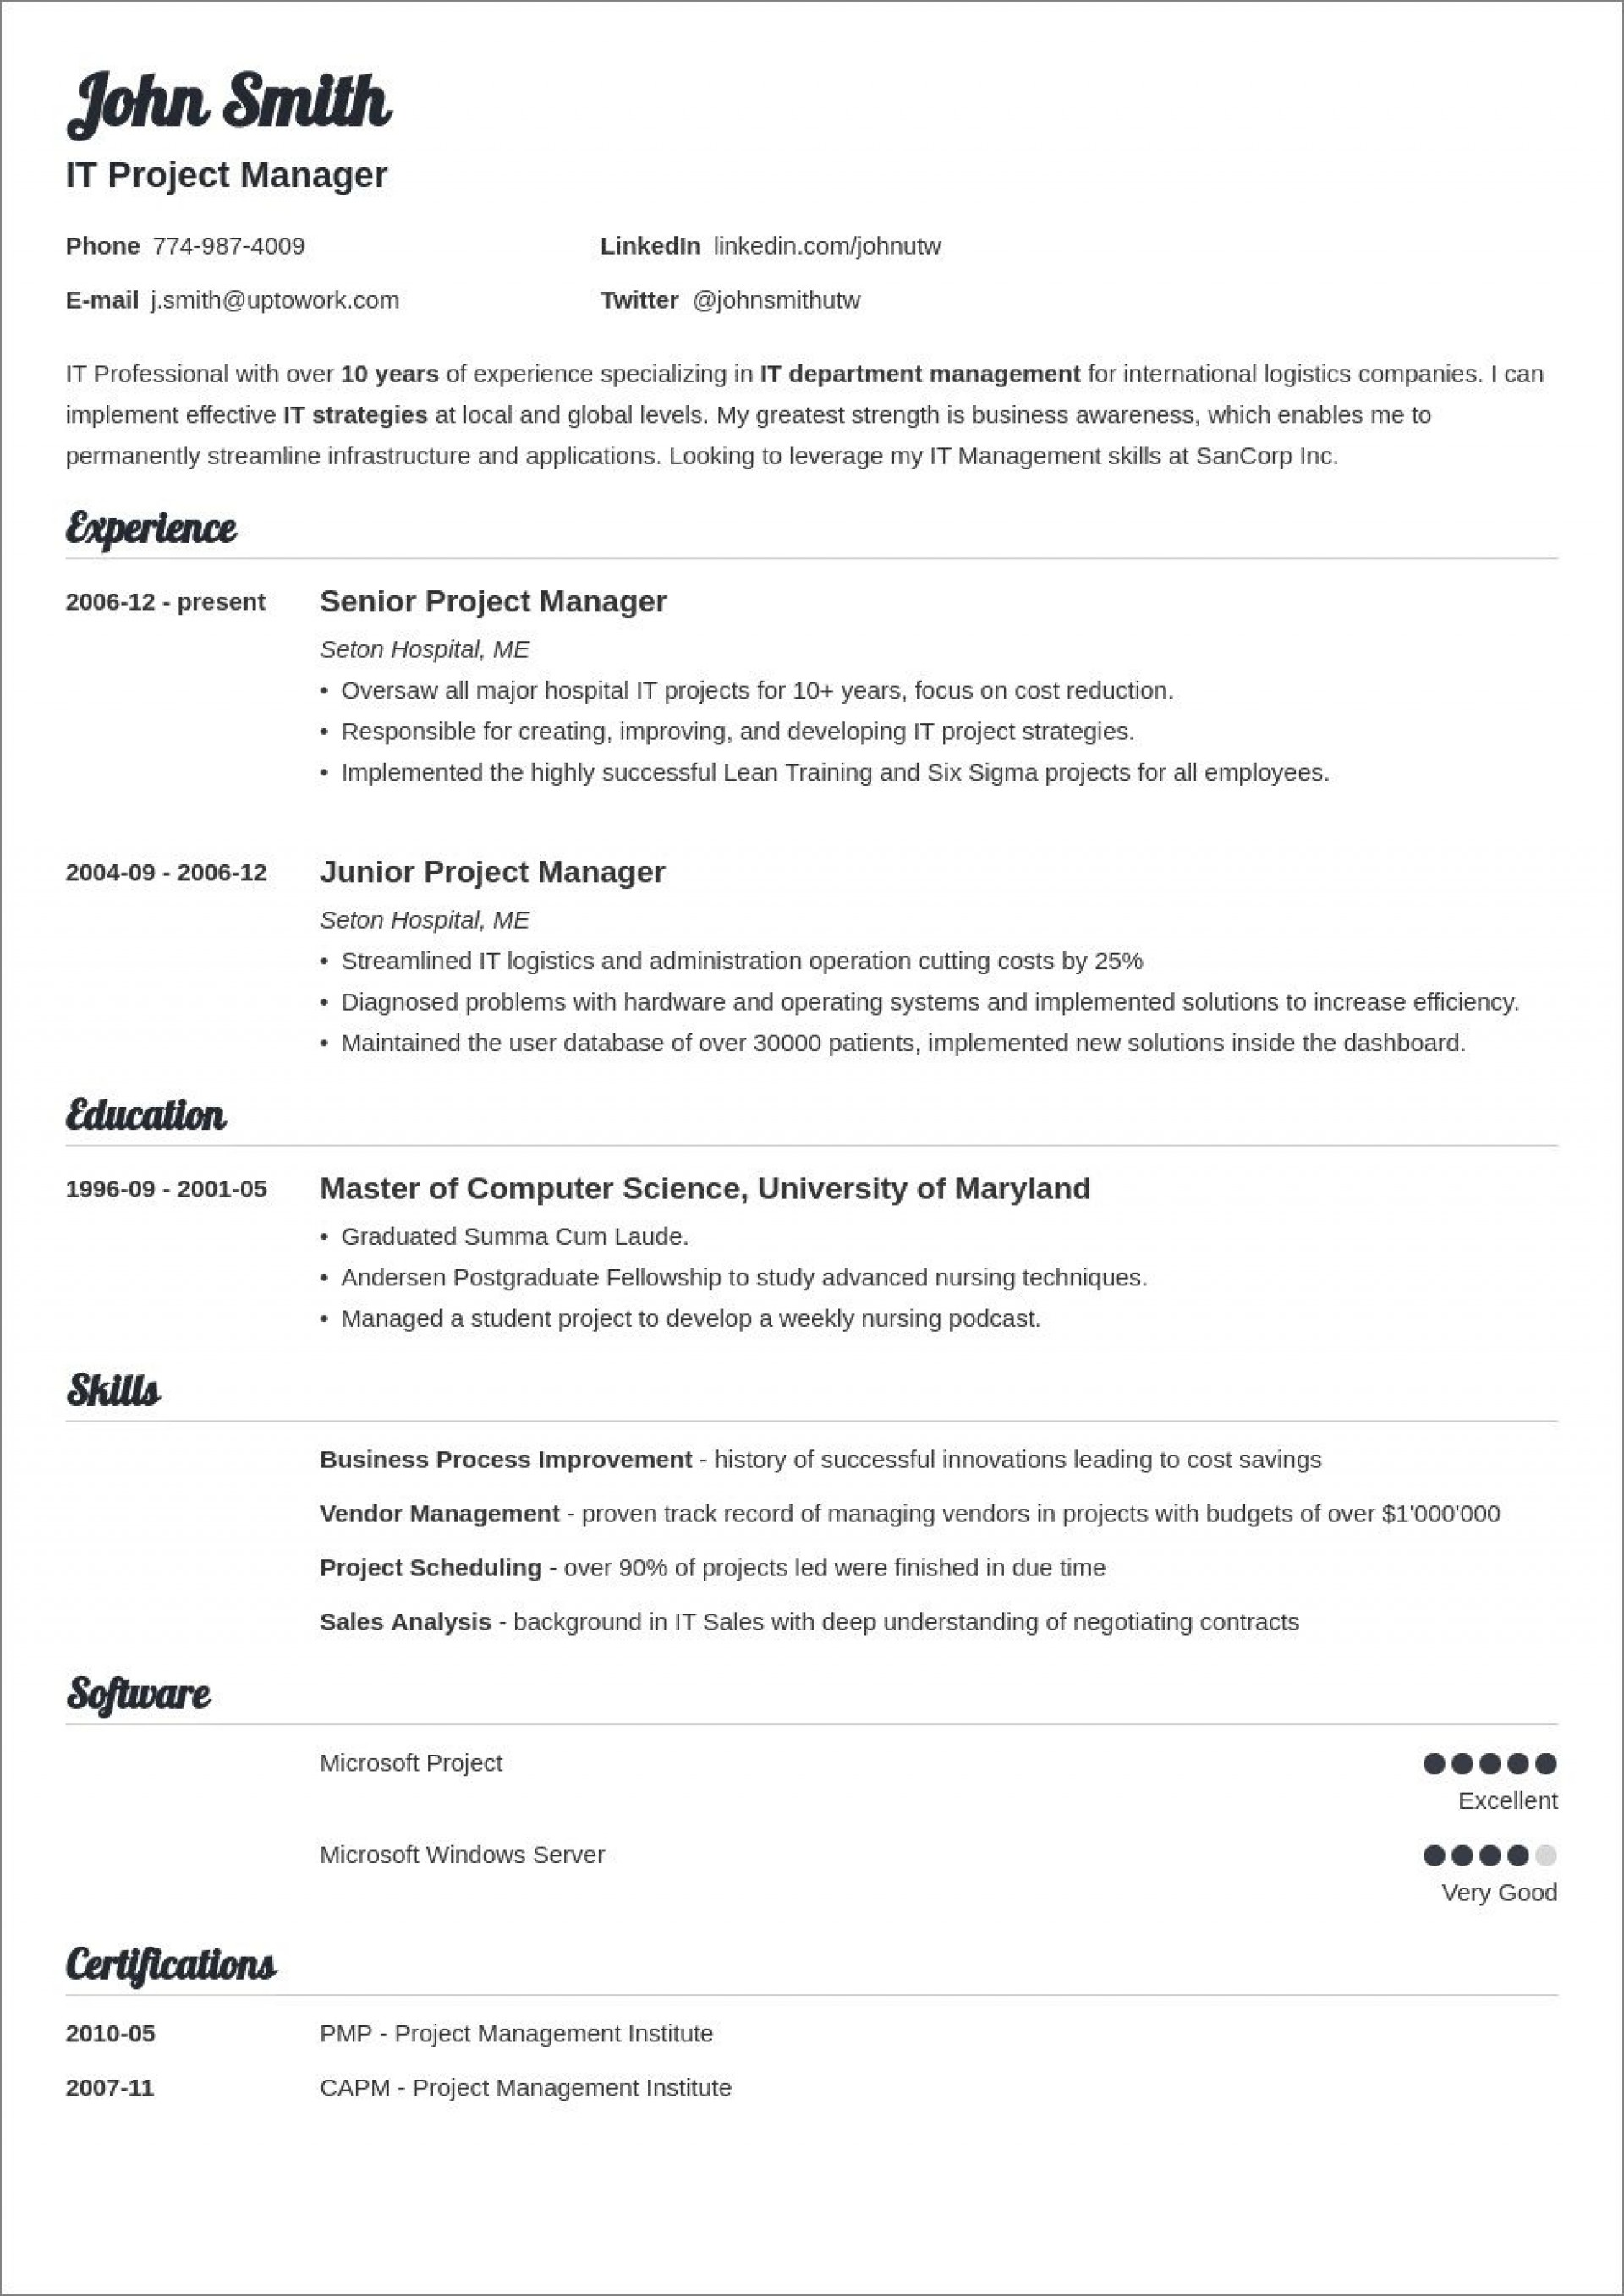 007 Archaicawful Basic Resume Template Word Example  Free Download 20201920